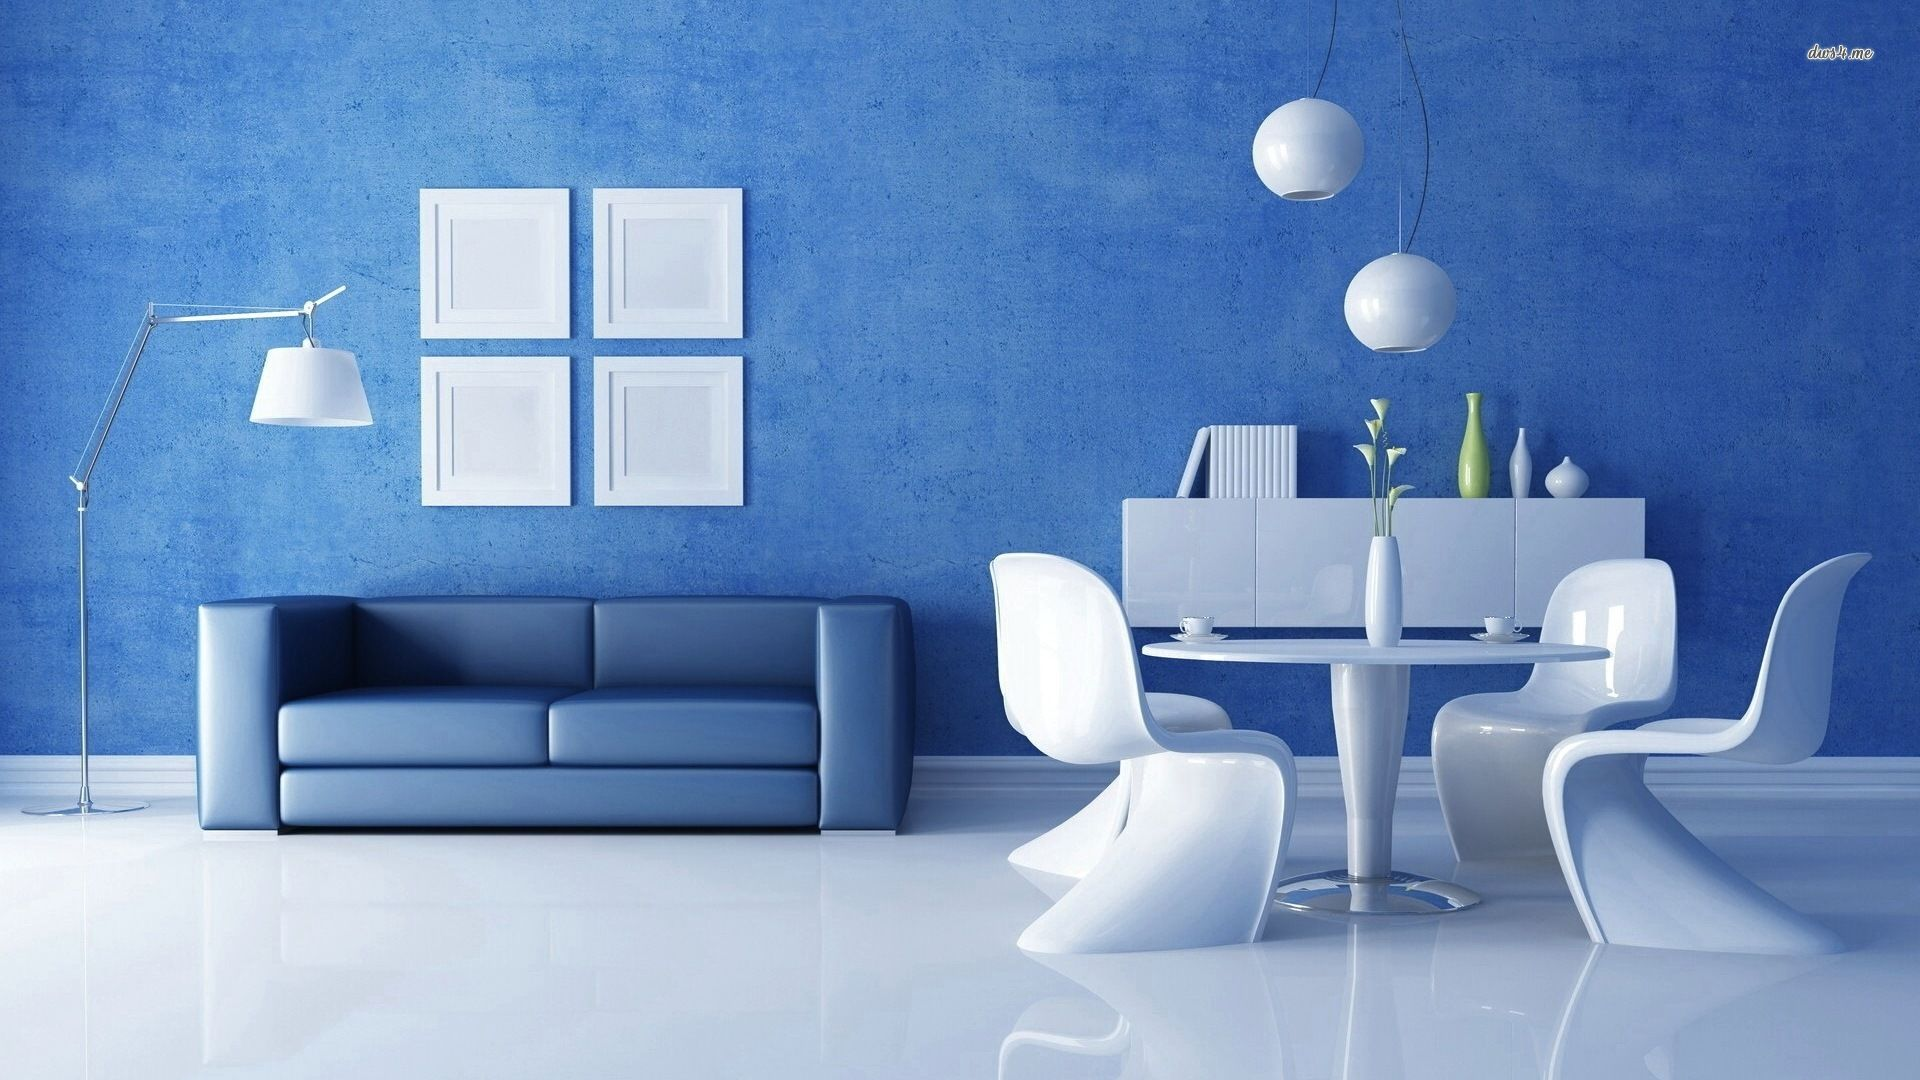 Pin by ron mcdeez on blue room living room colors - Blue and white interior design ideas ...